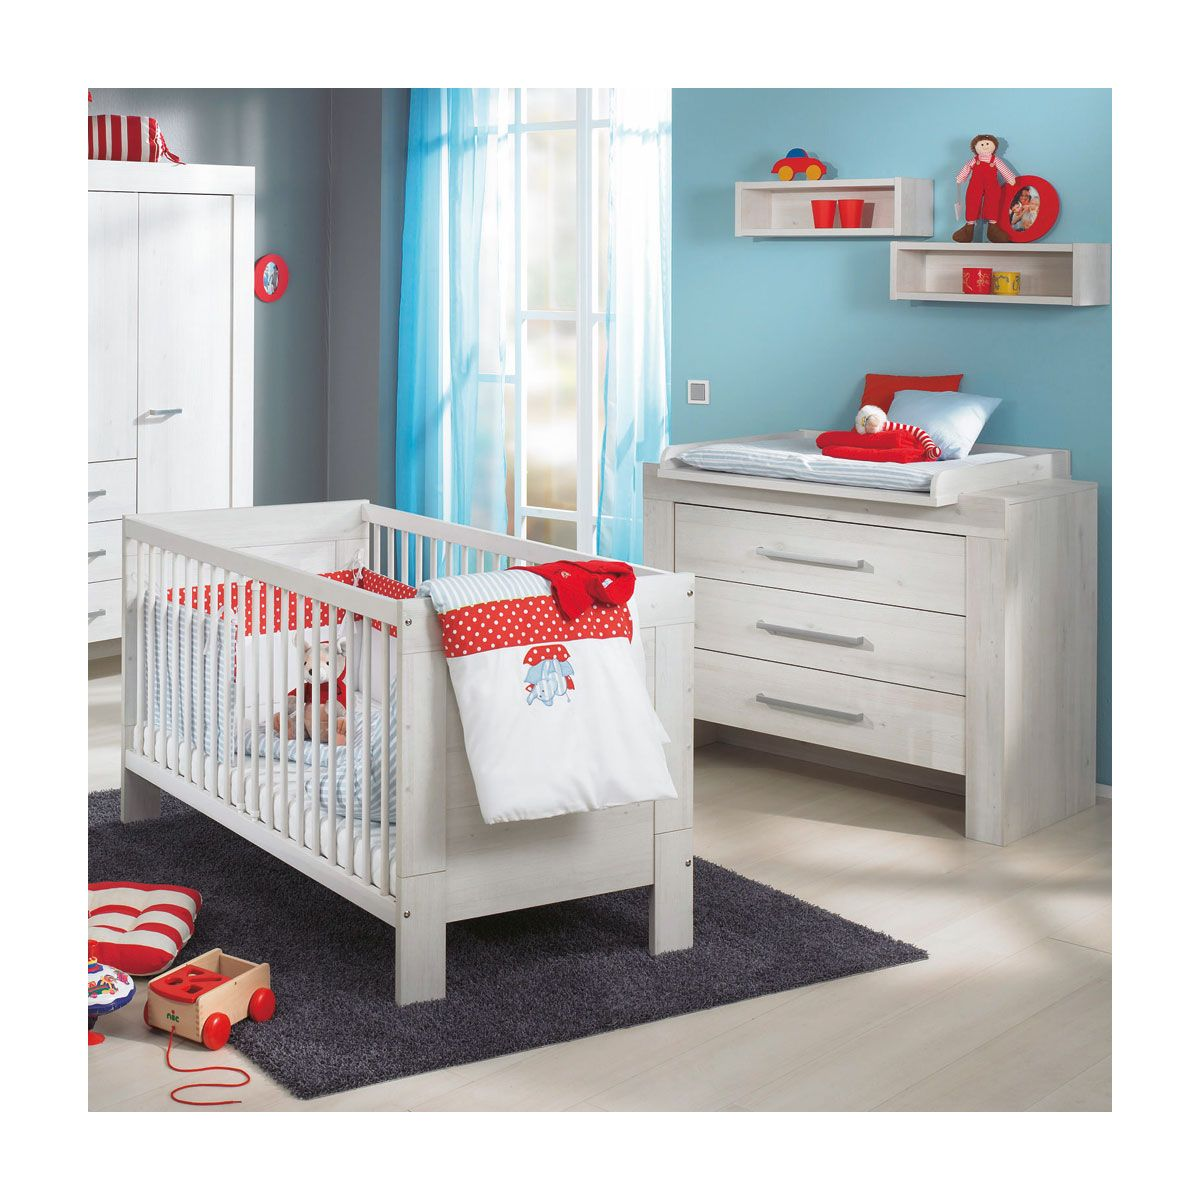 paidi mees sparset babybett wickelkommode. Black Bedroom Furniture Sets. Home Design Ideas